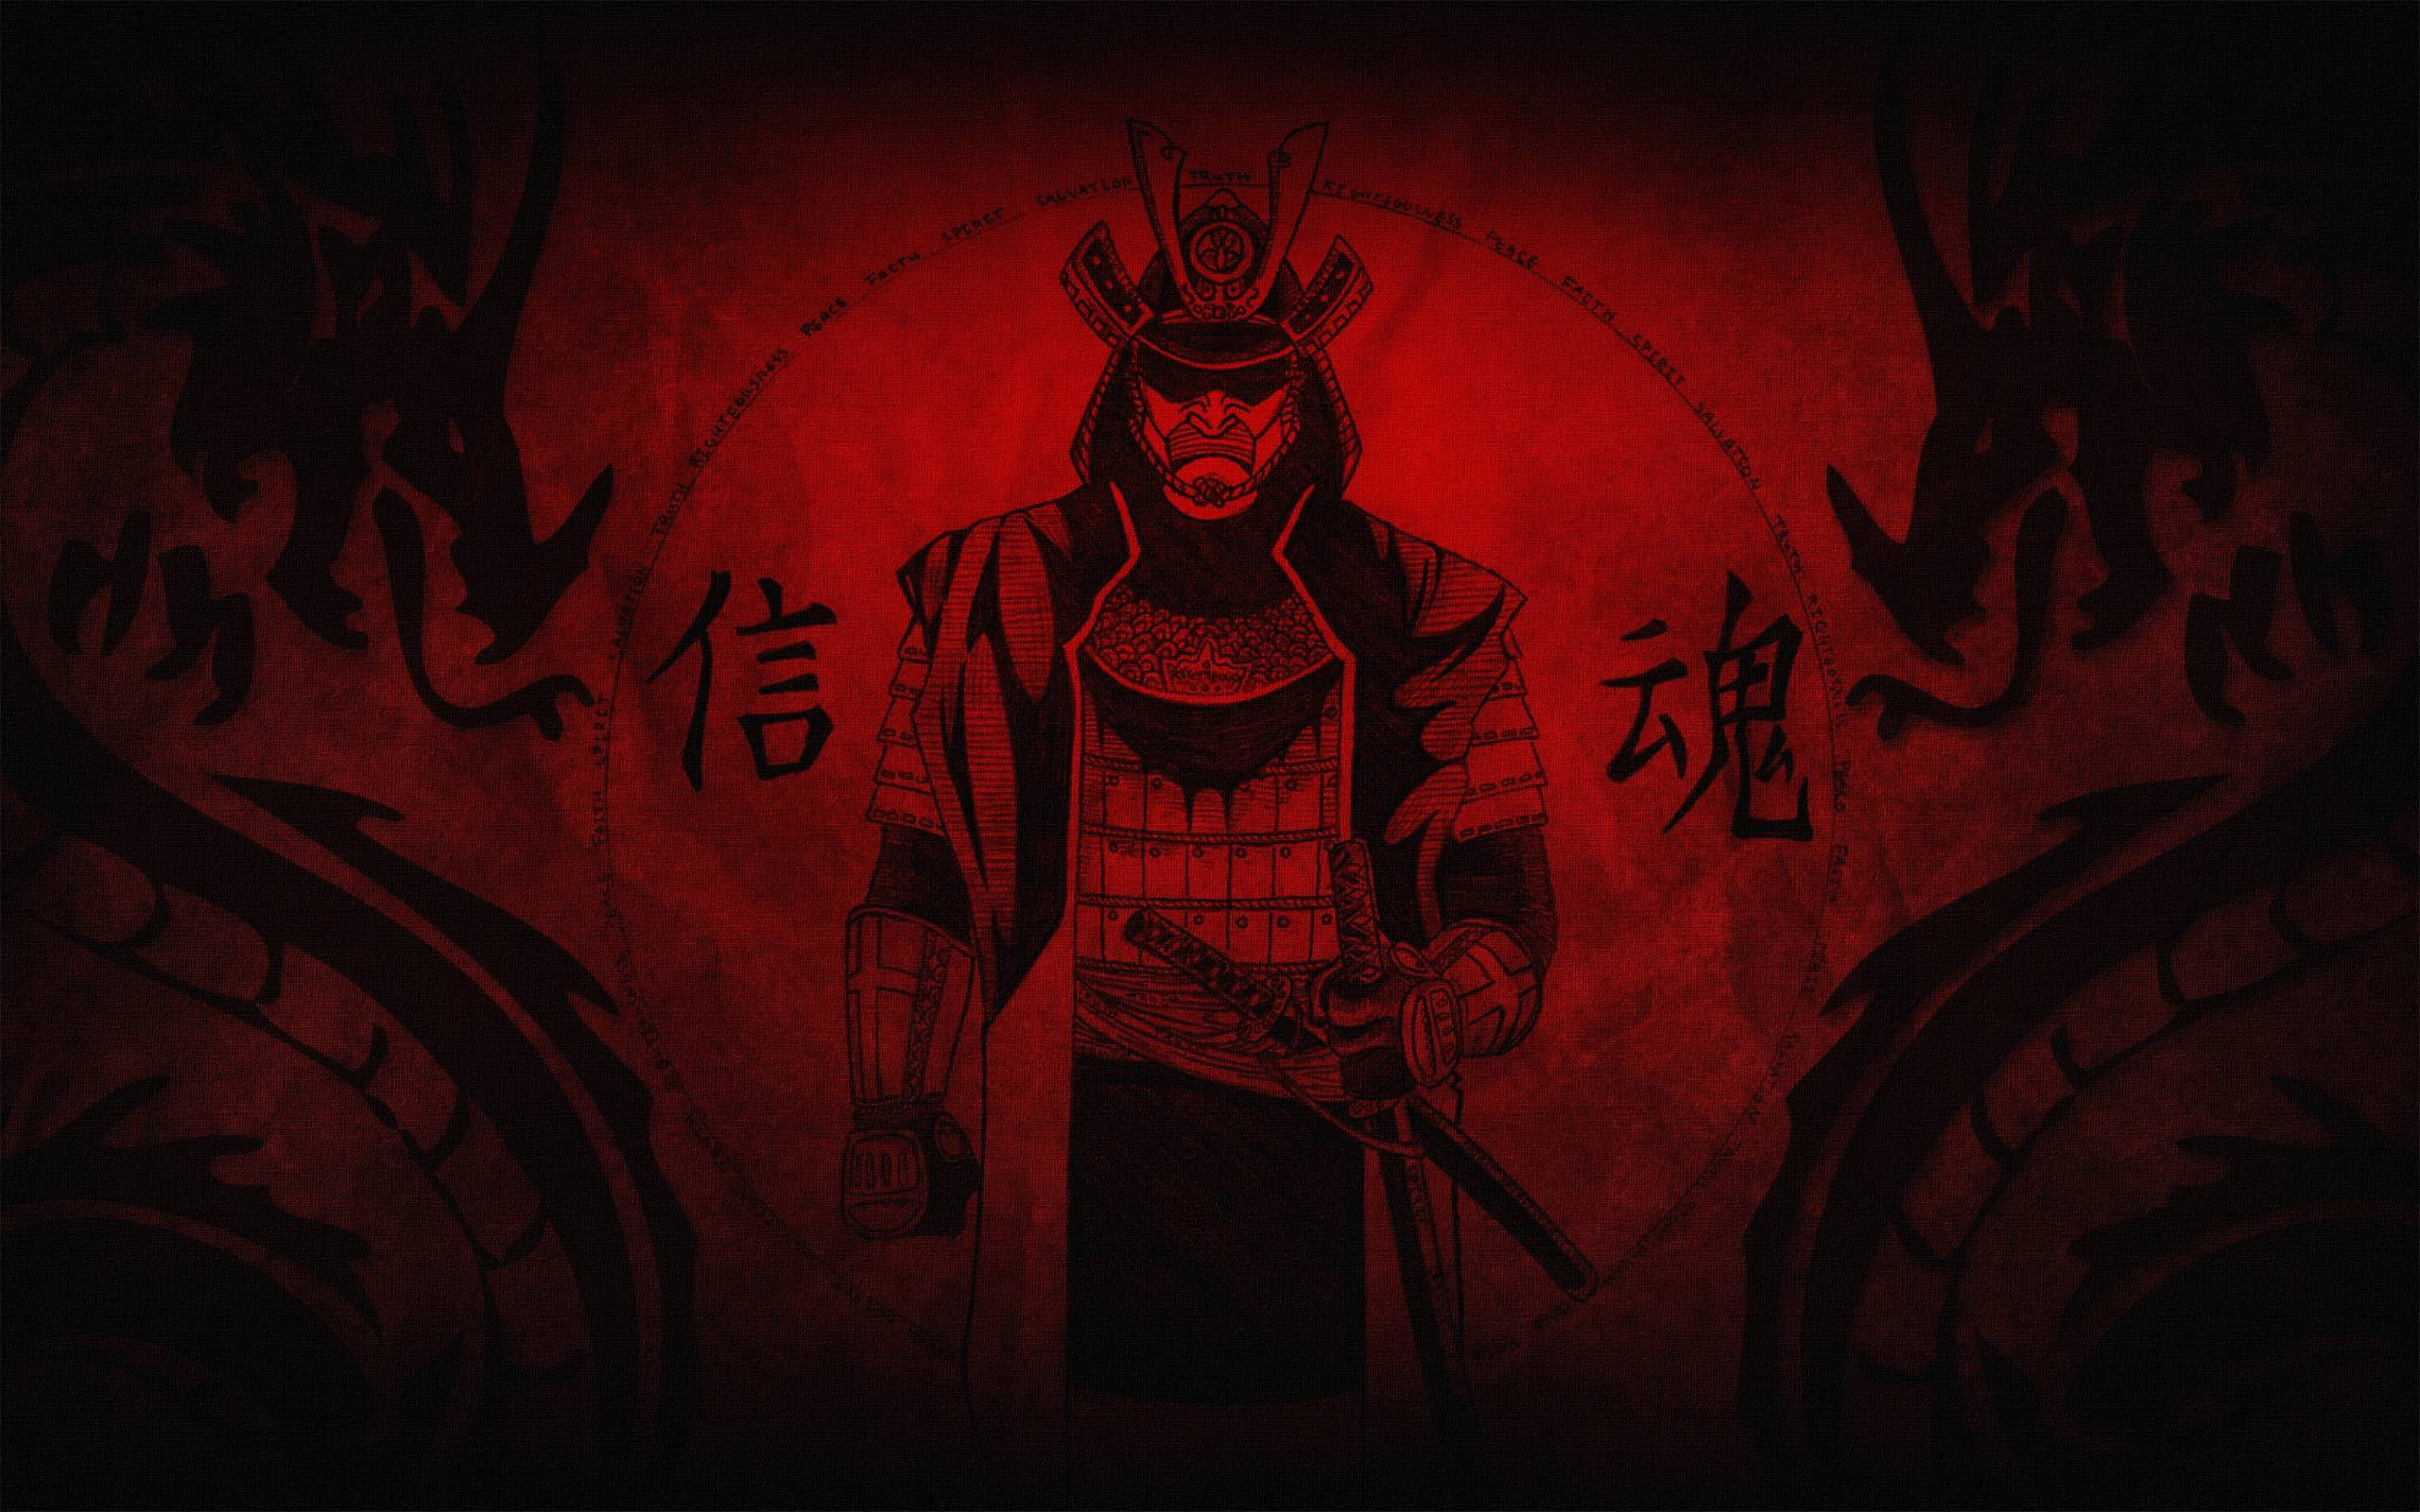 Wallpapers Samurai - Wallpaper Cave